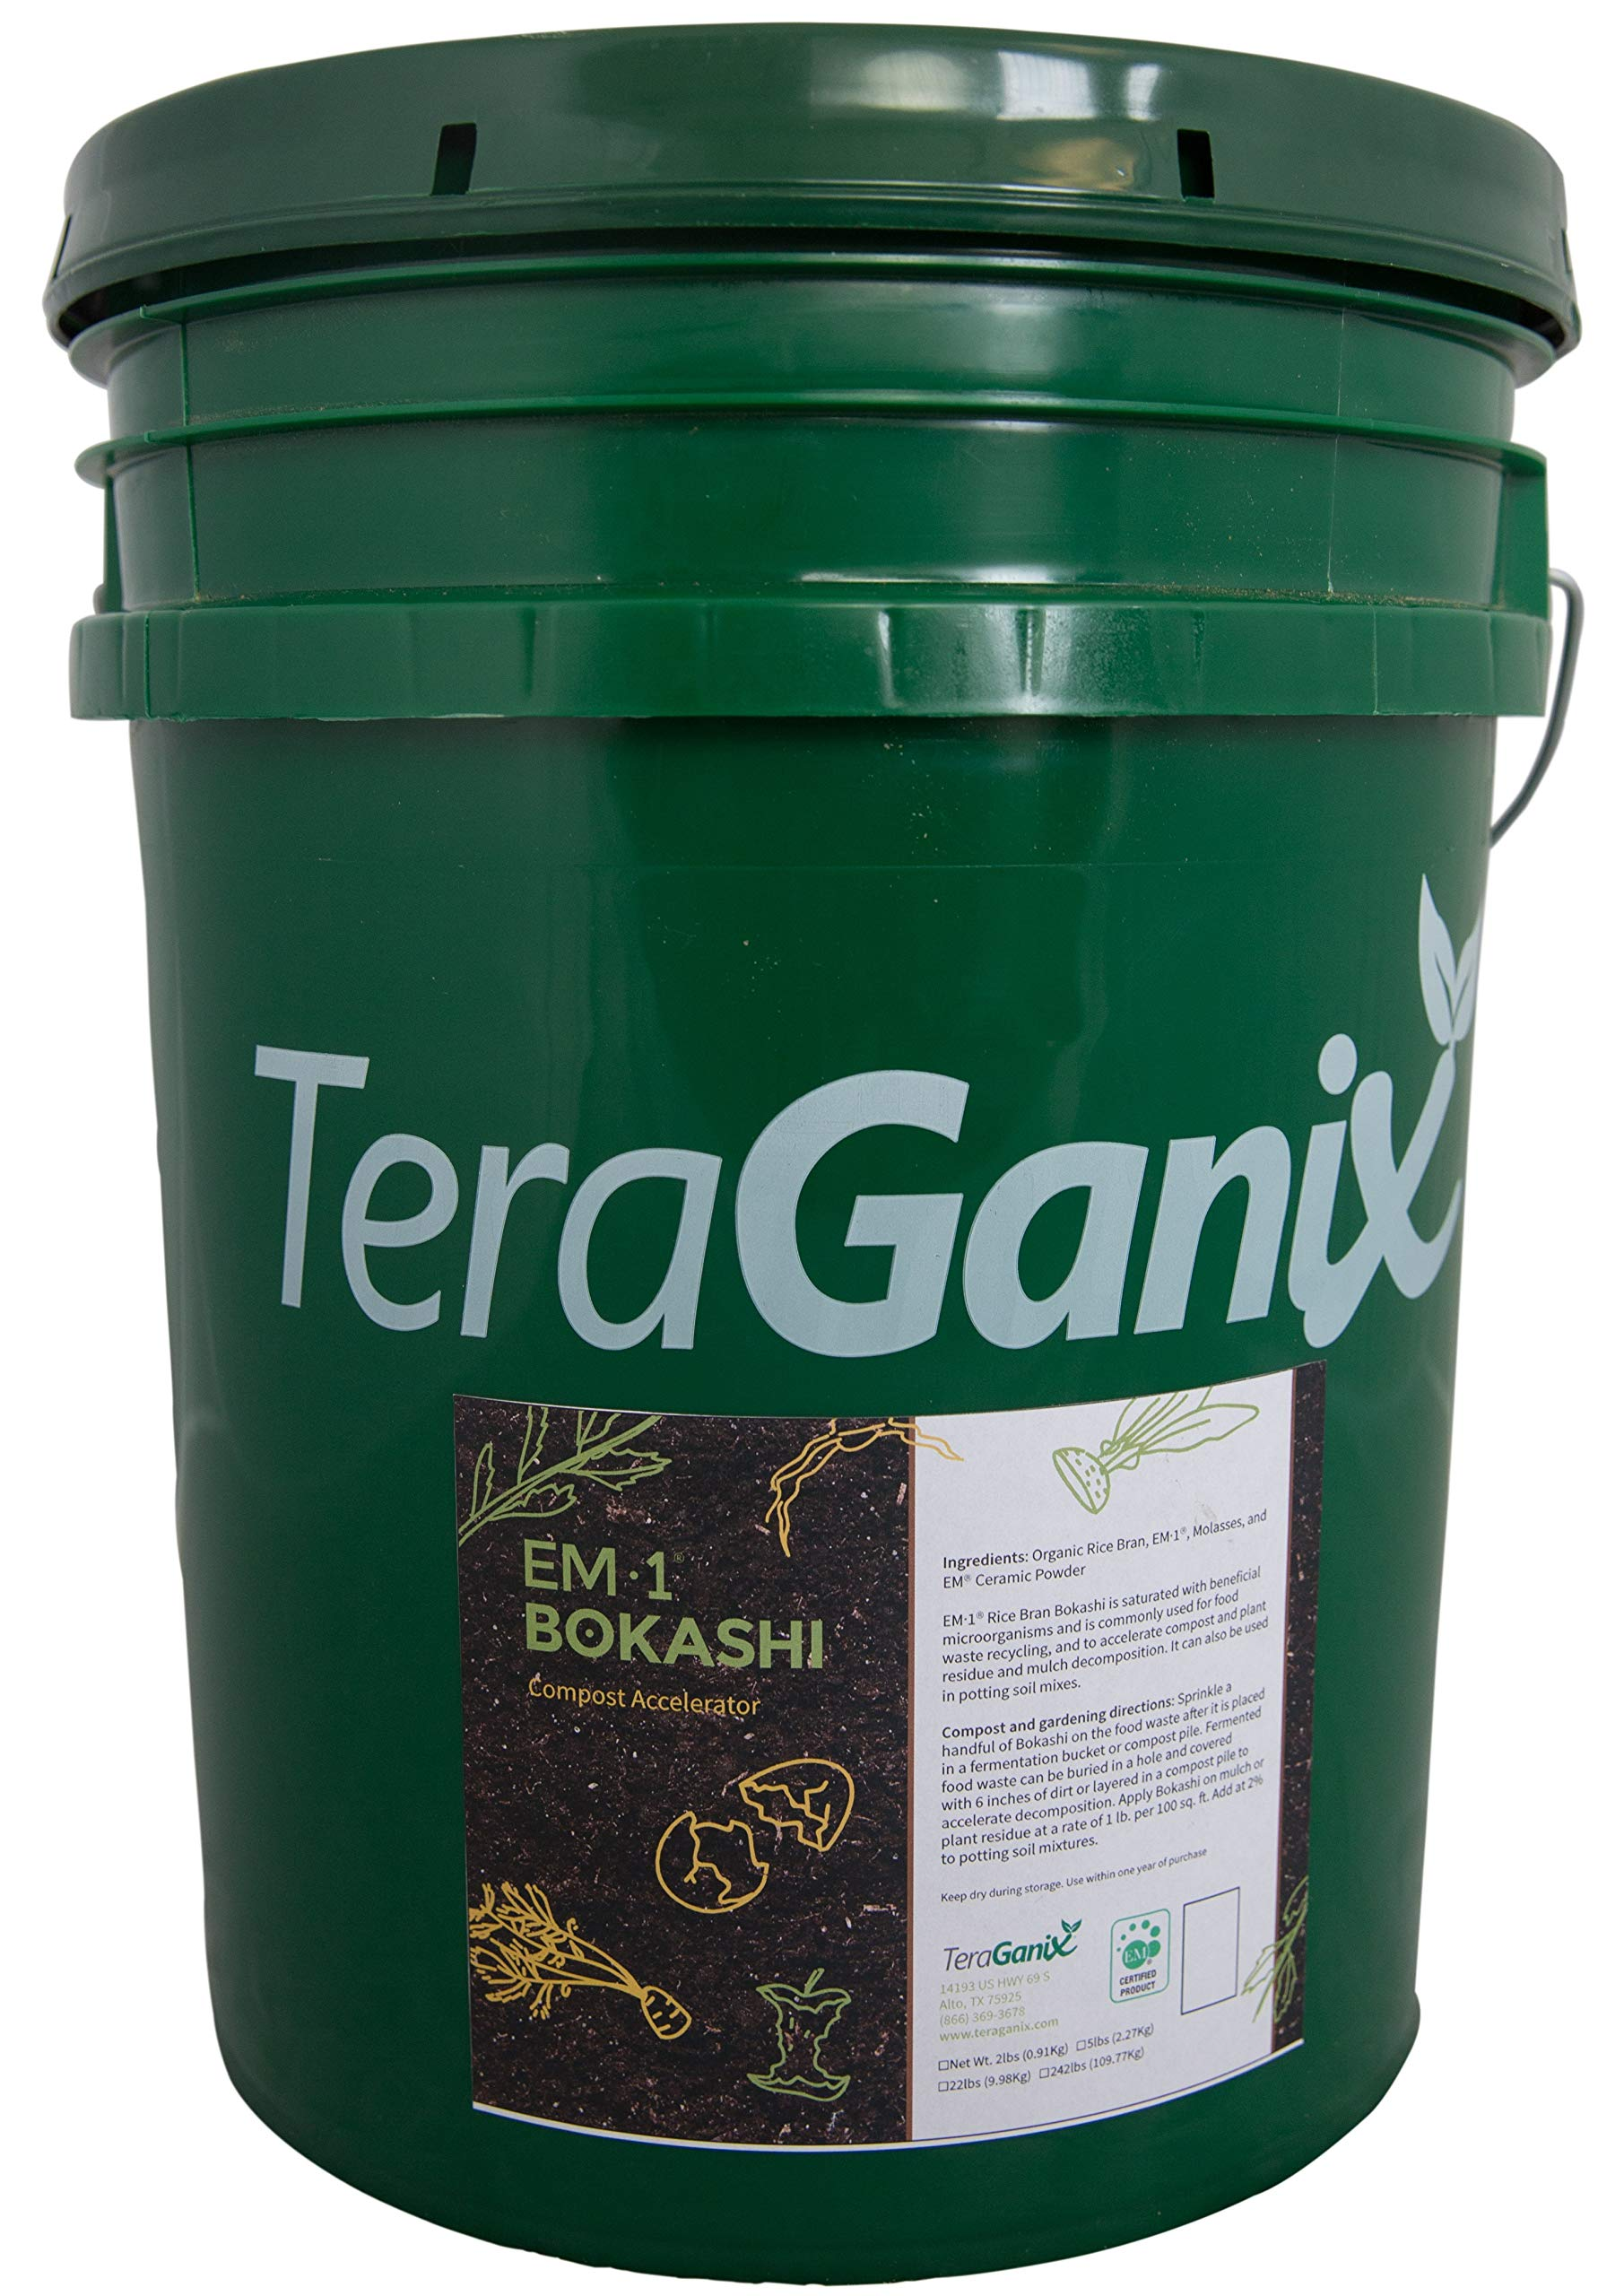 TeraGanix Bokashi EM-1 Organic Rice Bran Mix | 22lbs. - Dry Powder to Compost Food & Pet Waste Indoors for Better Planting Soil